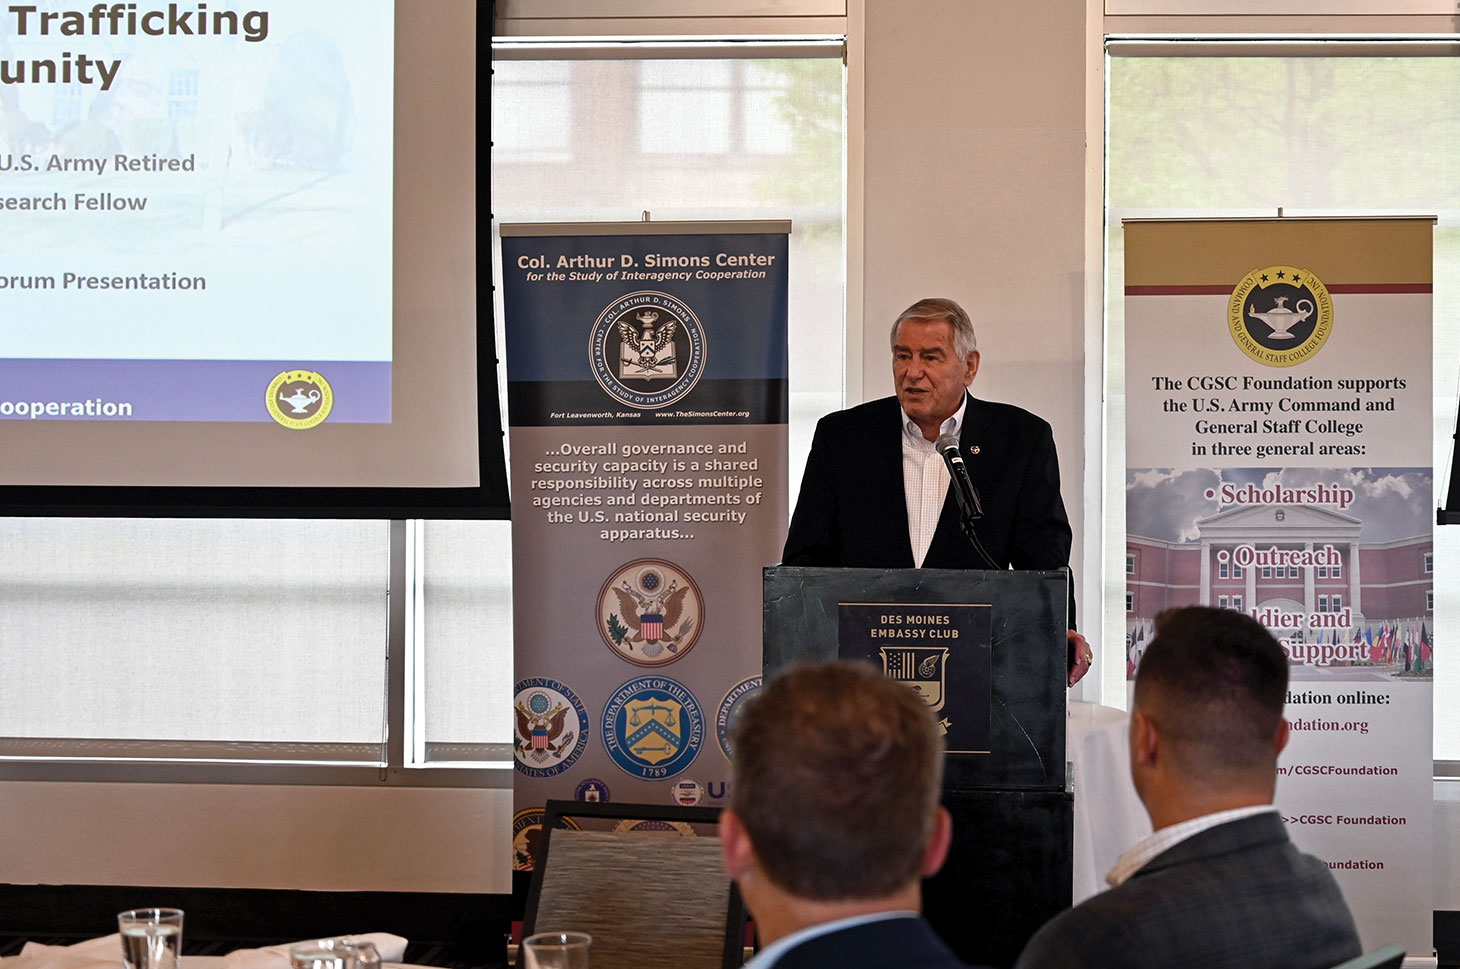 Simons Center Founder and current Director Col. (Ret.) Bob Ulin provides background information about the CGSC Foundation and the Simons Center during the Simons Center National Security Forum at the Des Moines Embassy Club West on May 20, 2021.